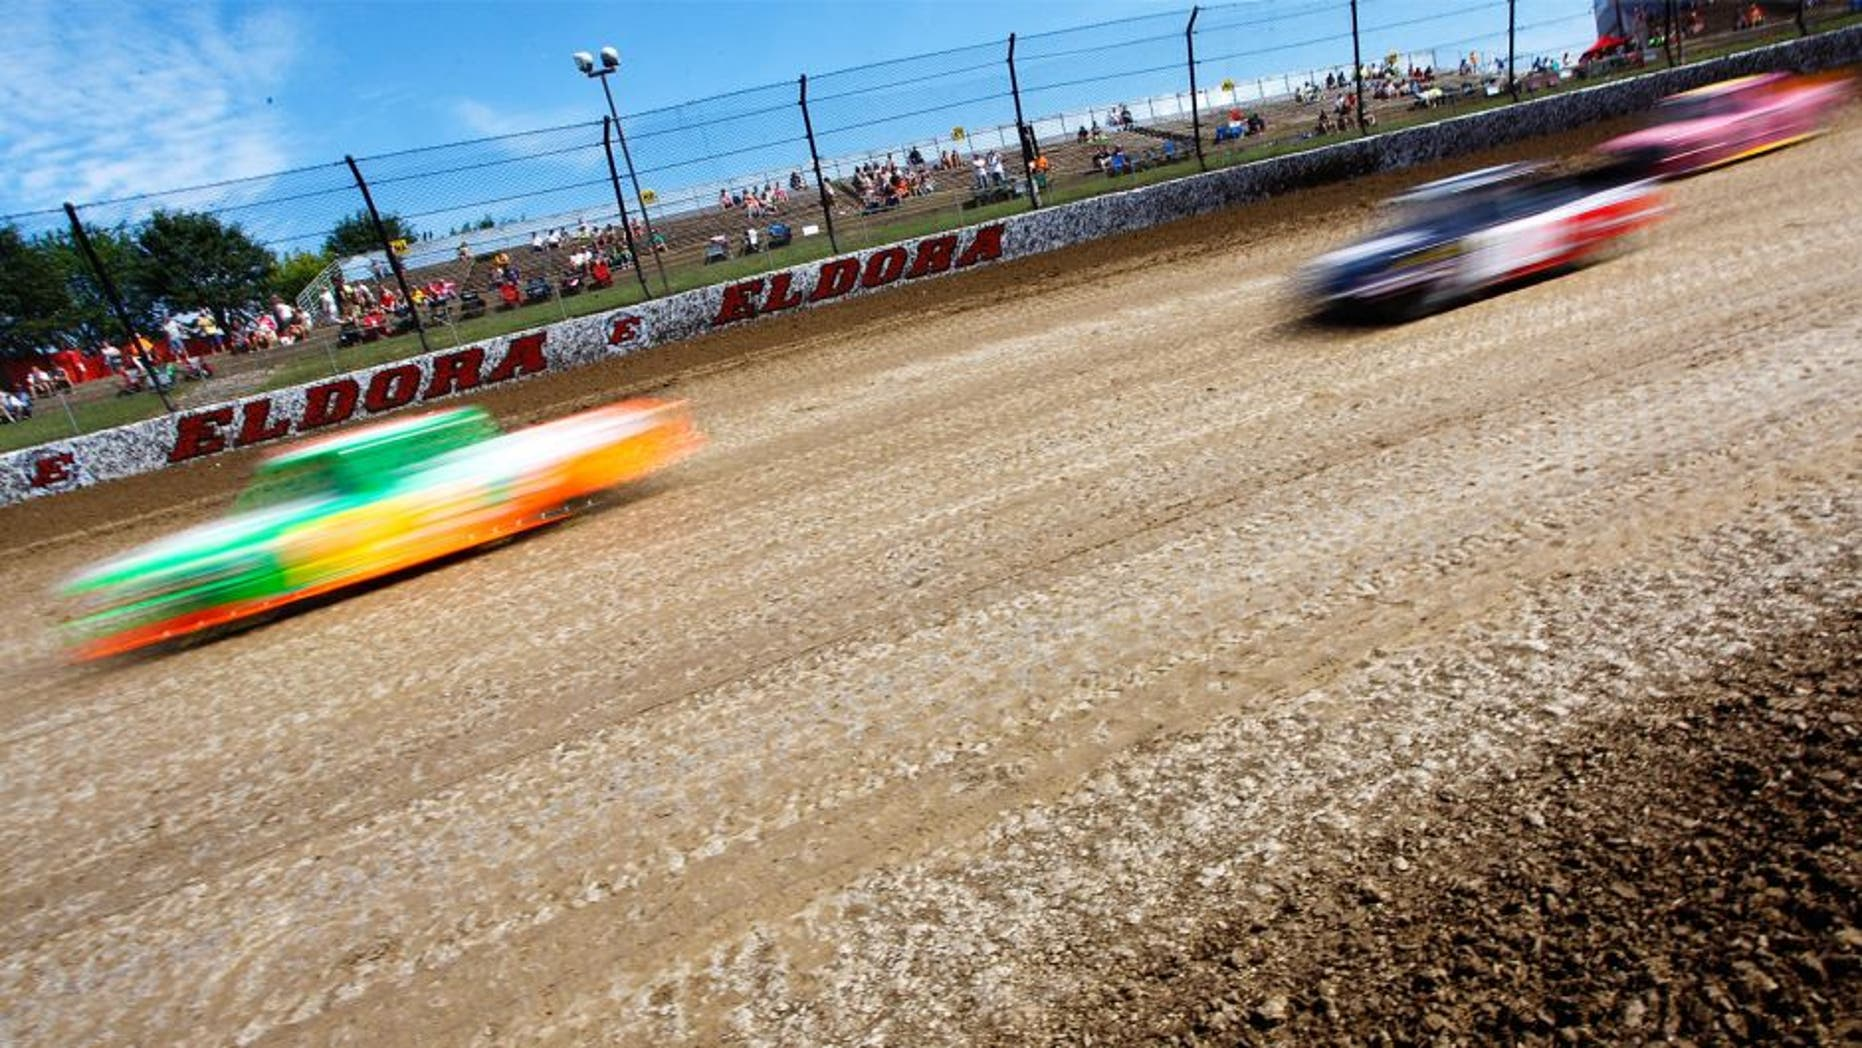 ROSSBURG, OH - JULY 22: General View of trucks during practice for NASCAR Camping World Truck Series 3rd Annual 1-800-Car-Cash Mud Summer Classic, at Eldora Speedway on July 22, 2015 in Rossburg, Ohio. (Photo by Brian Lawdermilk/NASCAR via Getty Images)